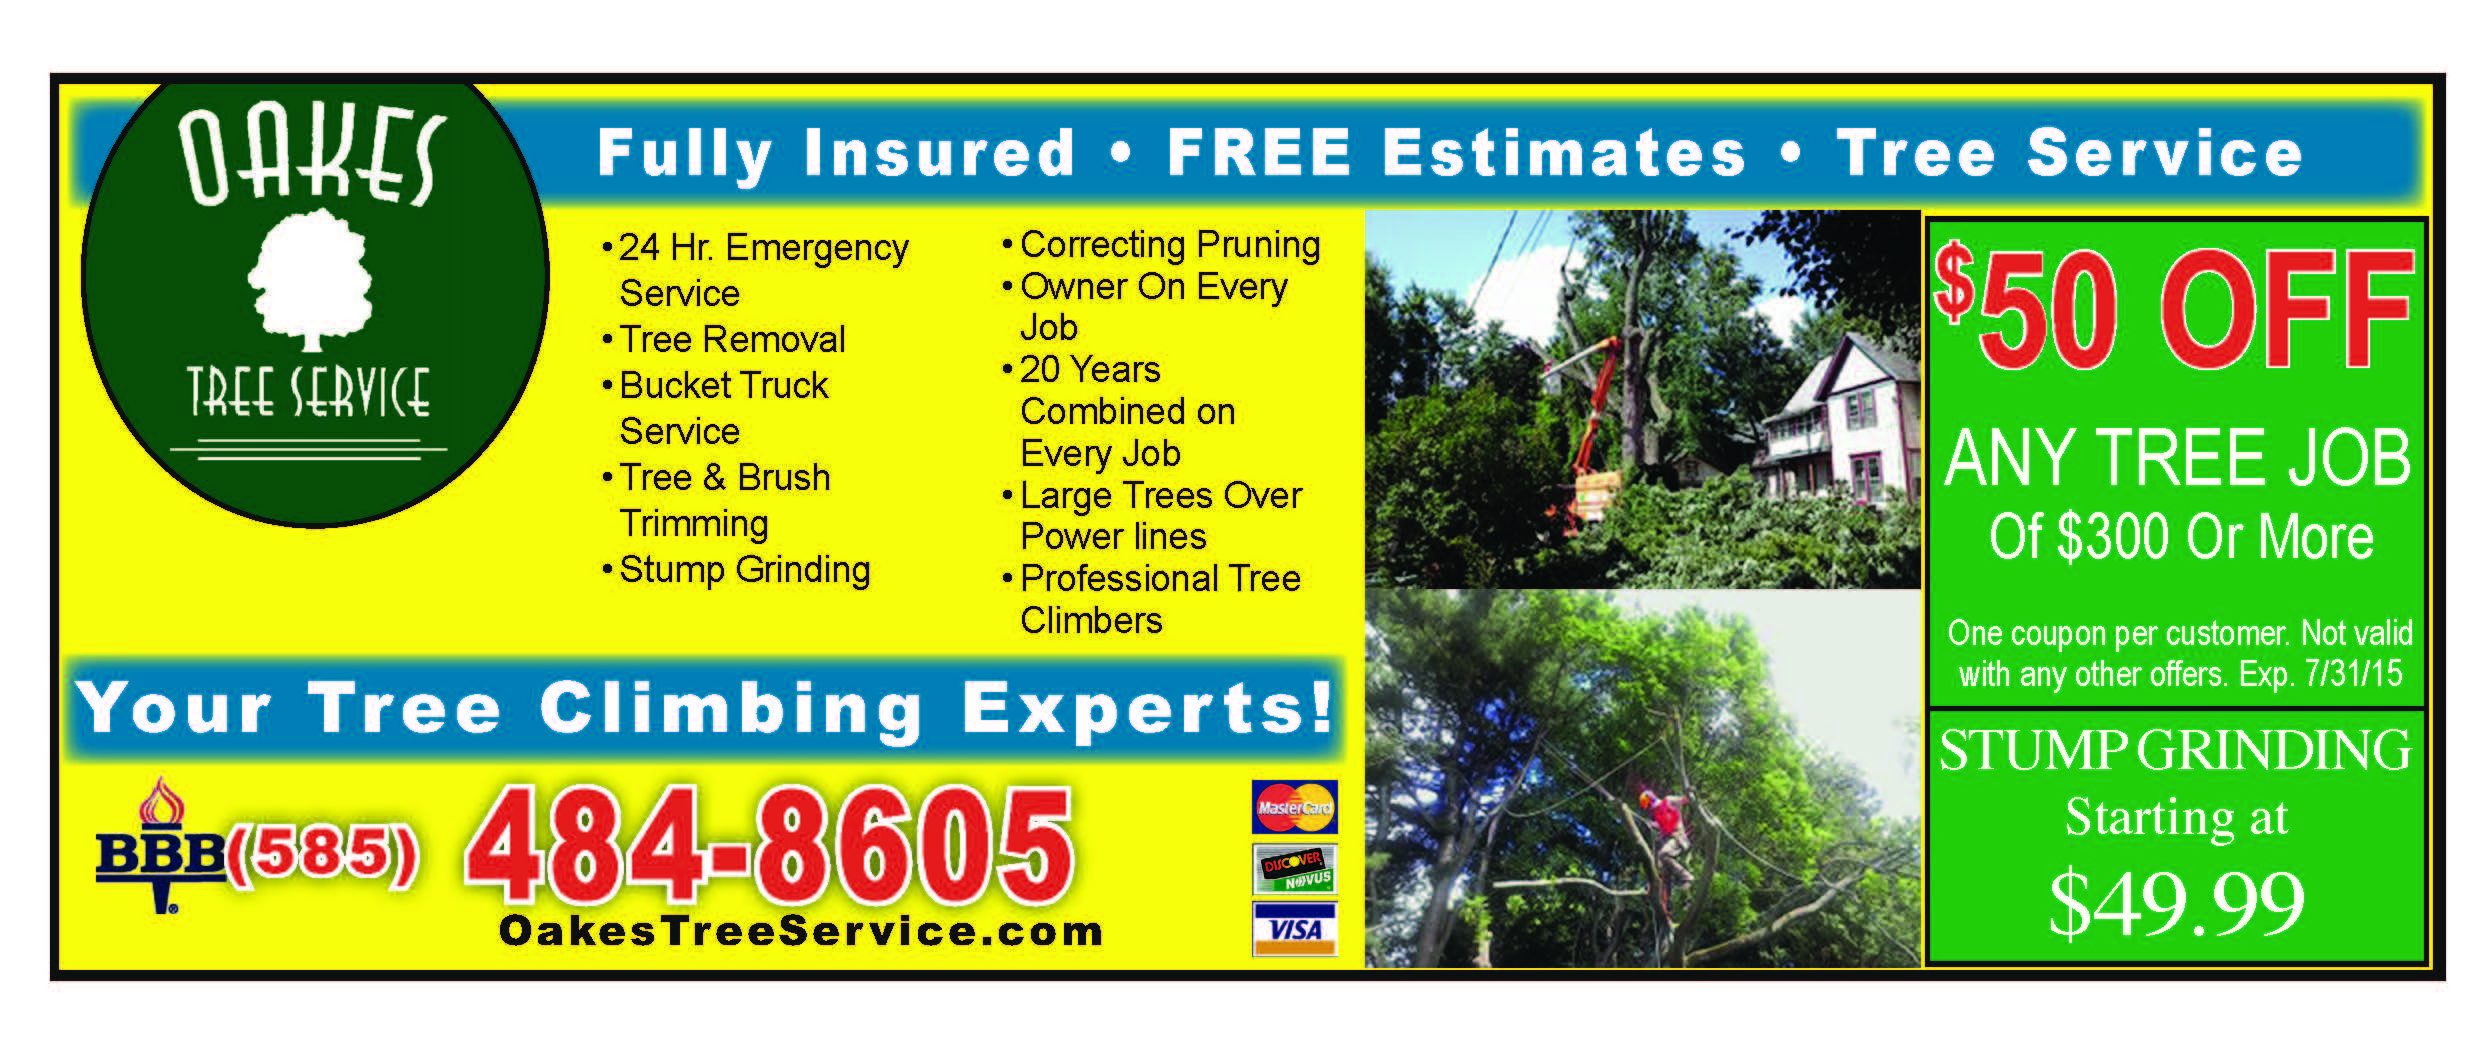 Oakes Tree Service coupons and specials